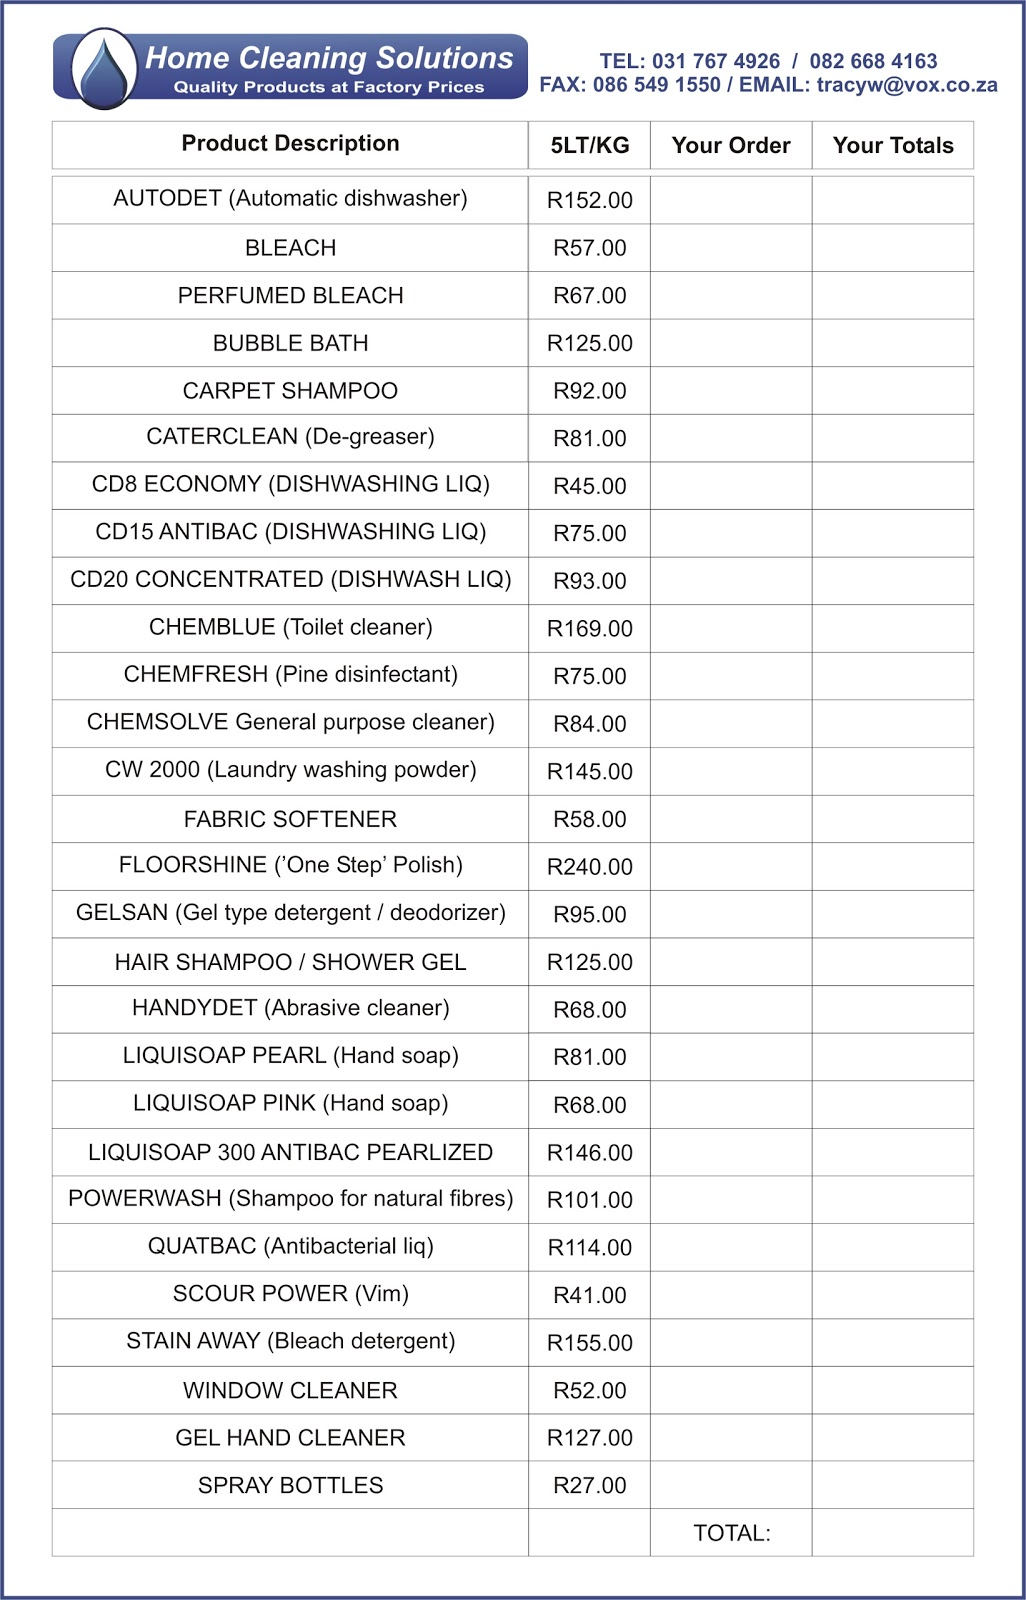 Home Cleaning Solutions Price List Amp Order Form